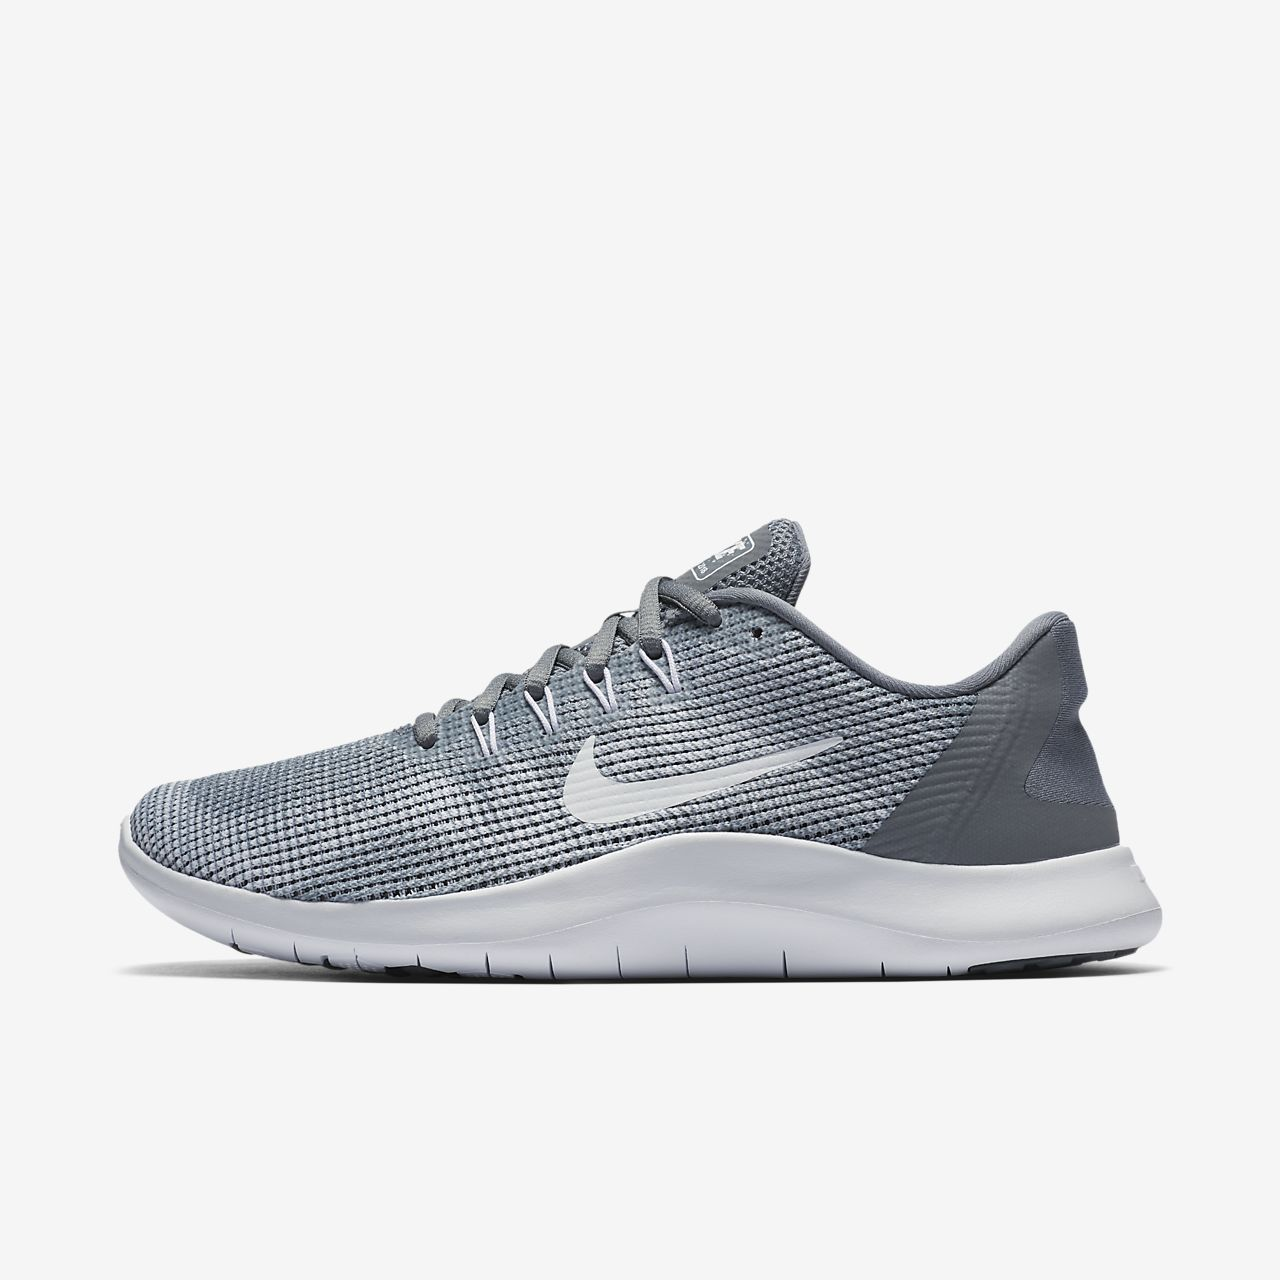 promo code 5086d dad91 ... Nike Flex RN 2018 Women s Running Shoe